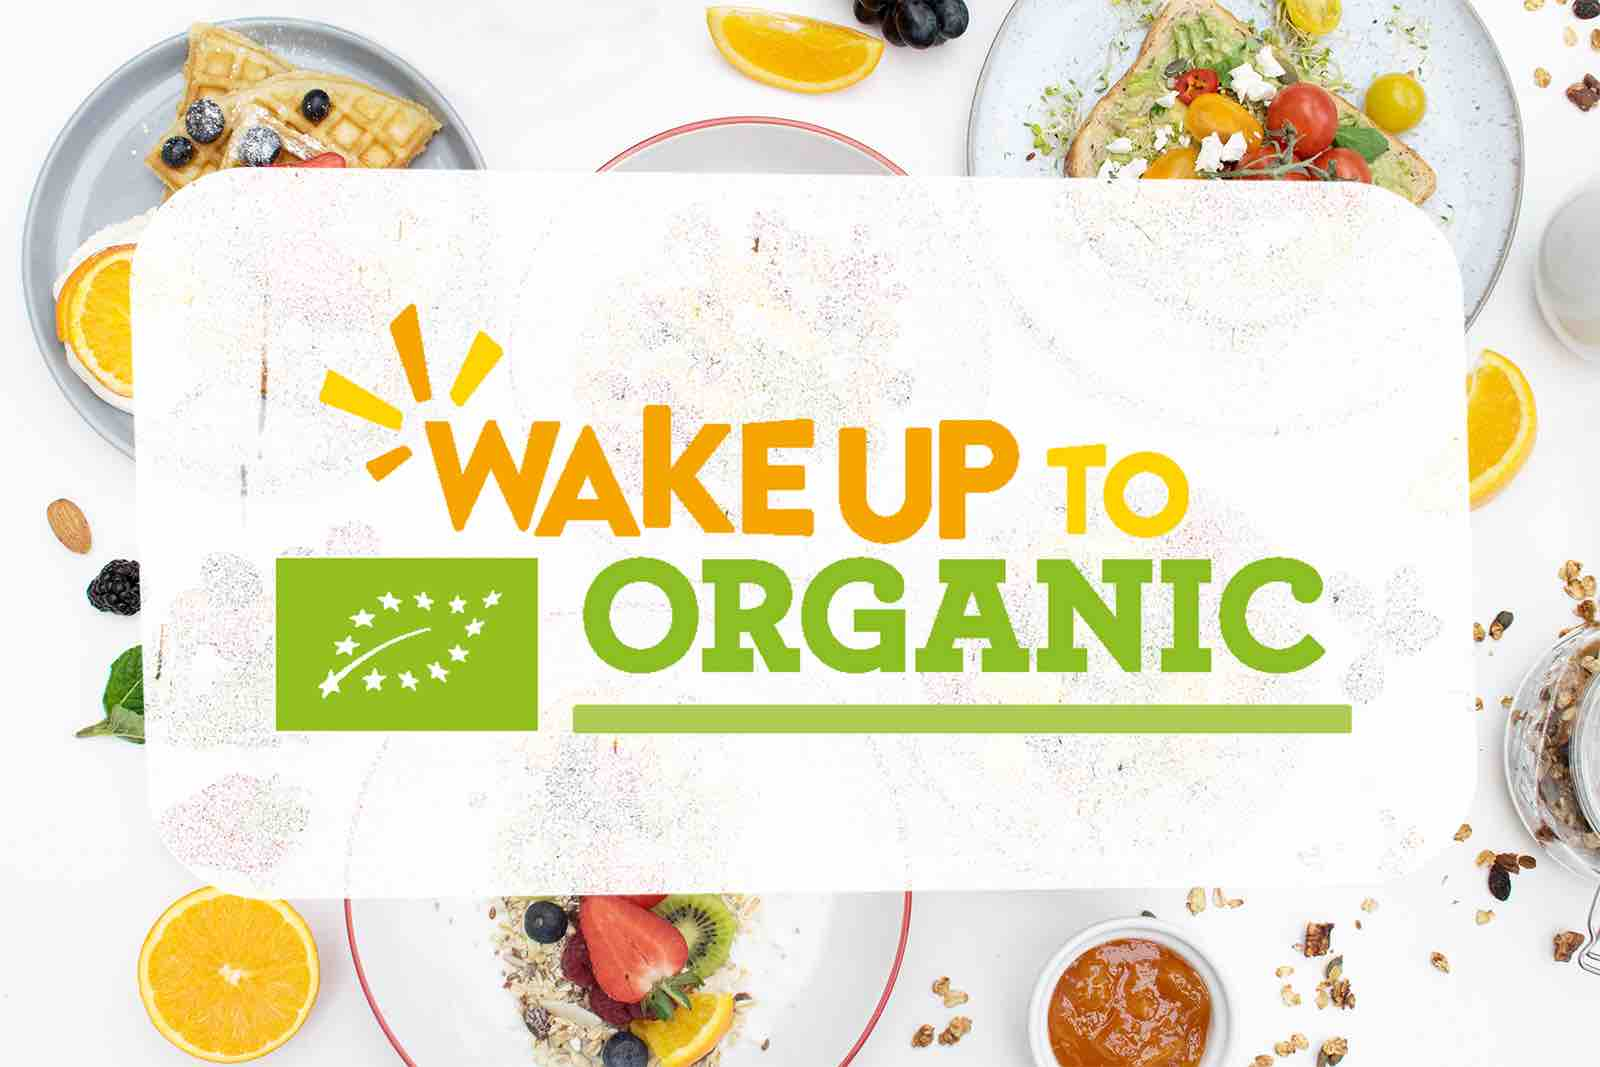 Wake Up To Organics logo. Photo credit: Wake Up To Organics